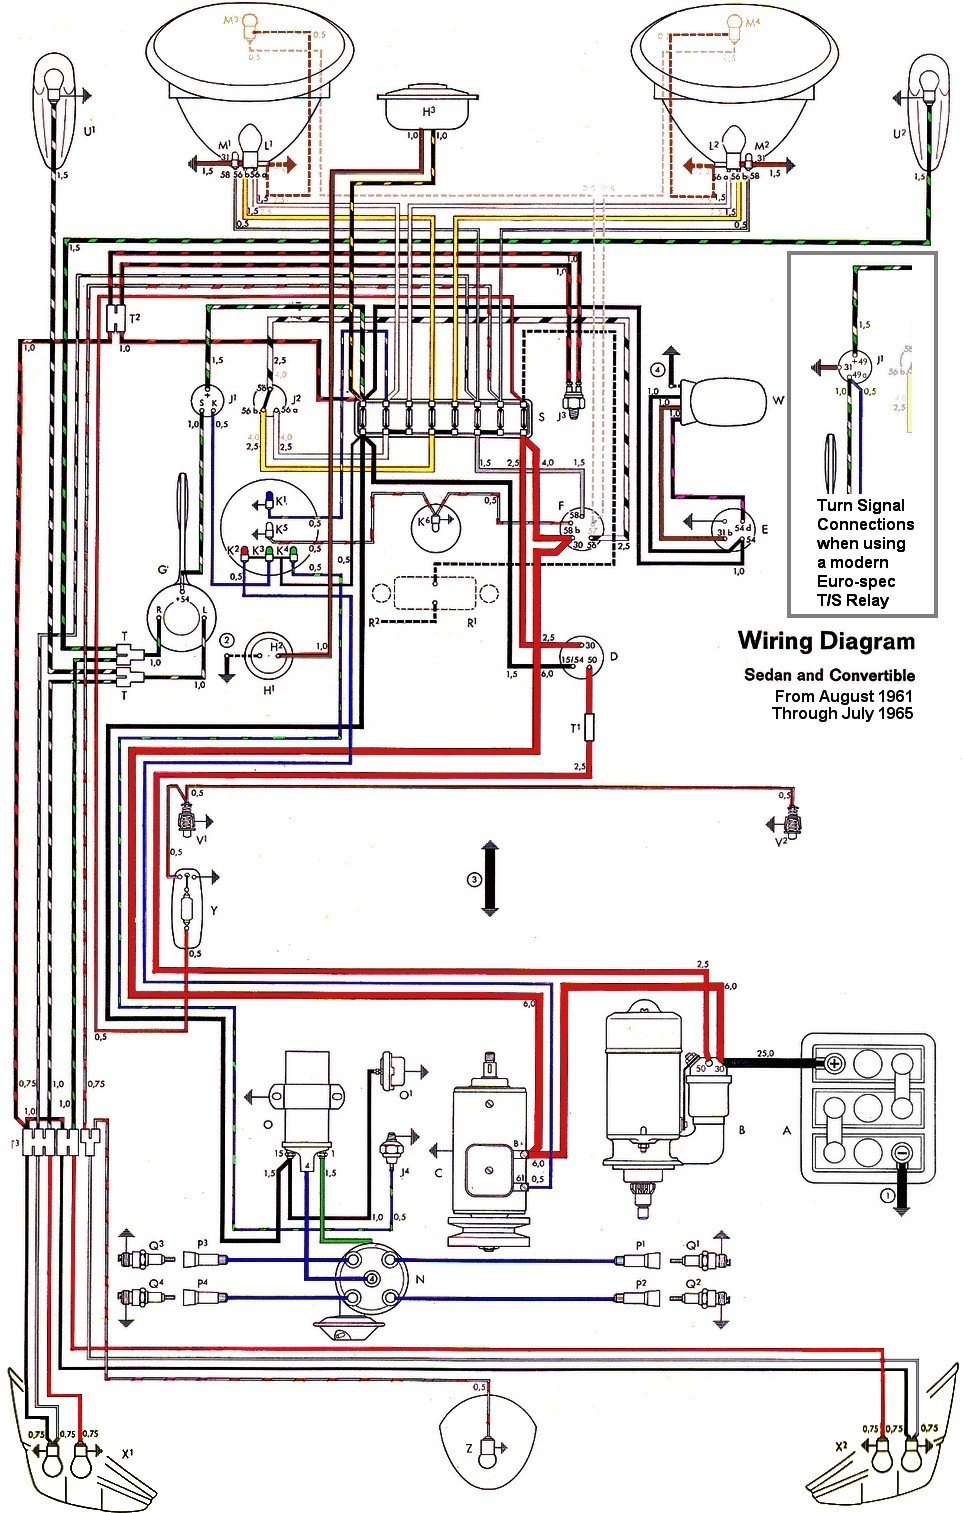 bug_62 65withinset volkswagen wiring diagram volkswagen golf wiring diagram \u2022 free vw type 3 wiring harness at aneh.co